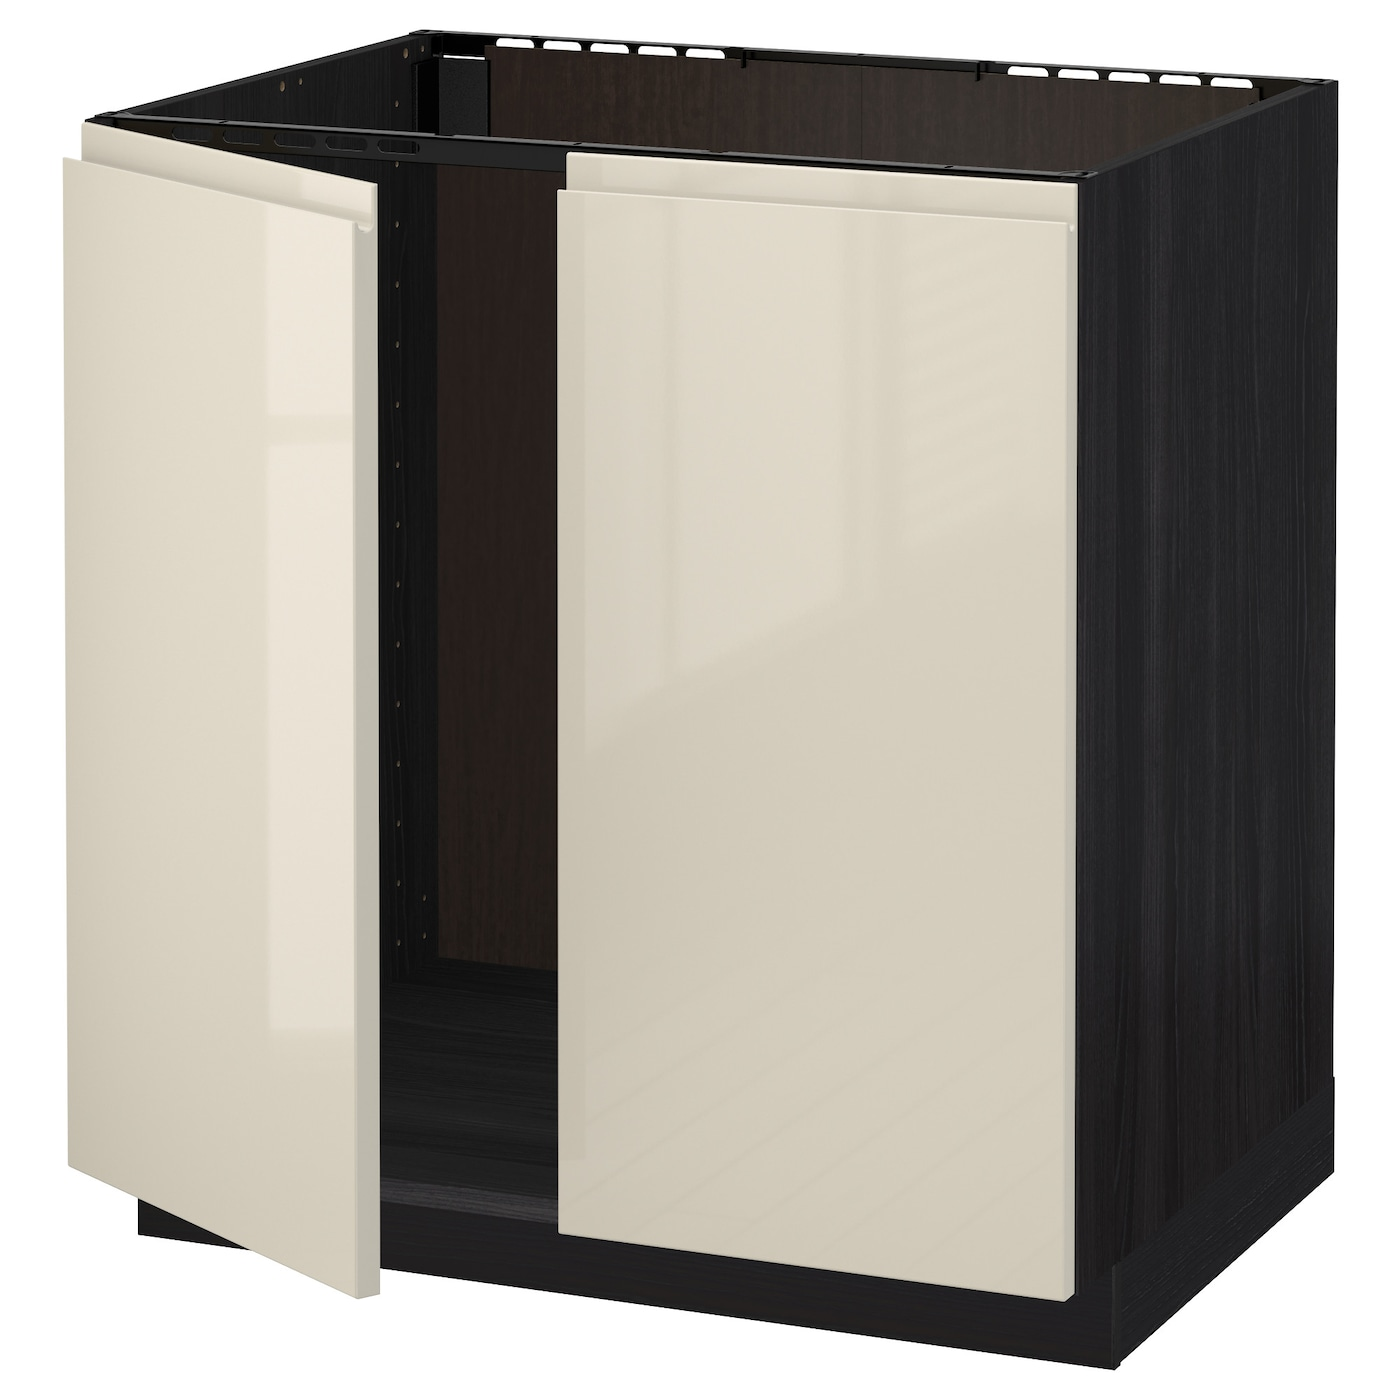 Metod base cabinet for sink 2 doors black voxtorp high for Kitchen base cabinets 700mm